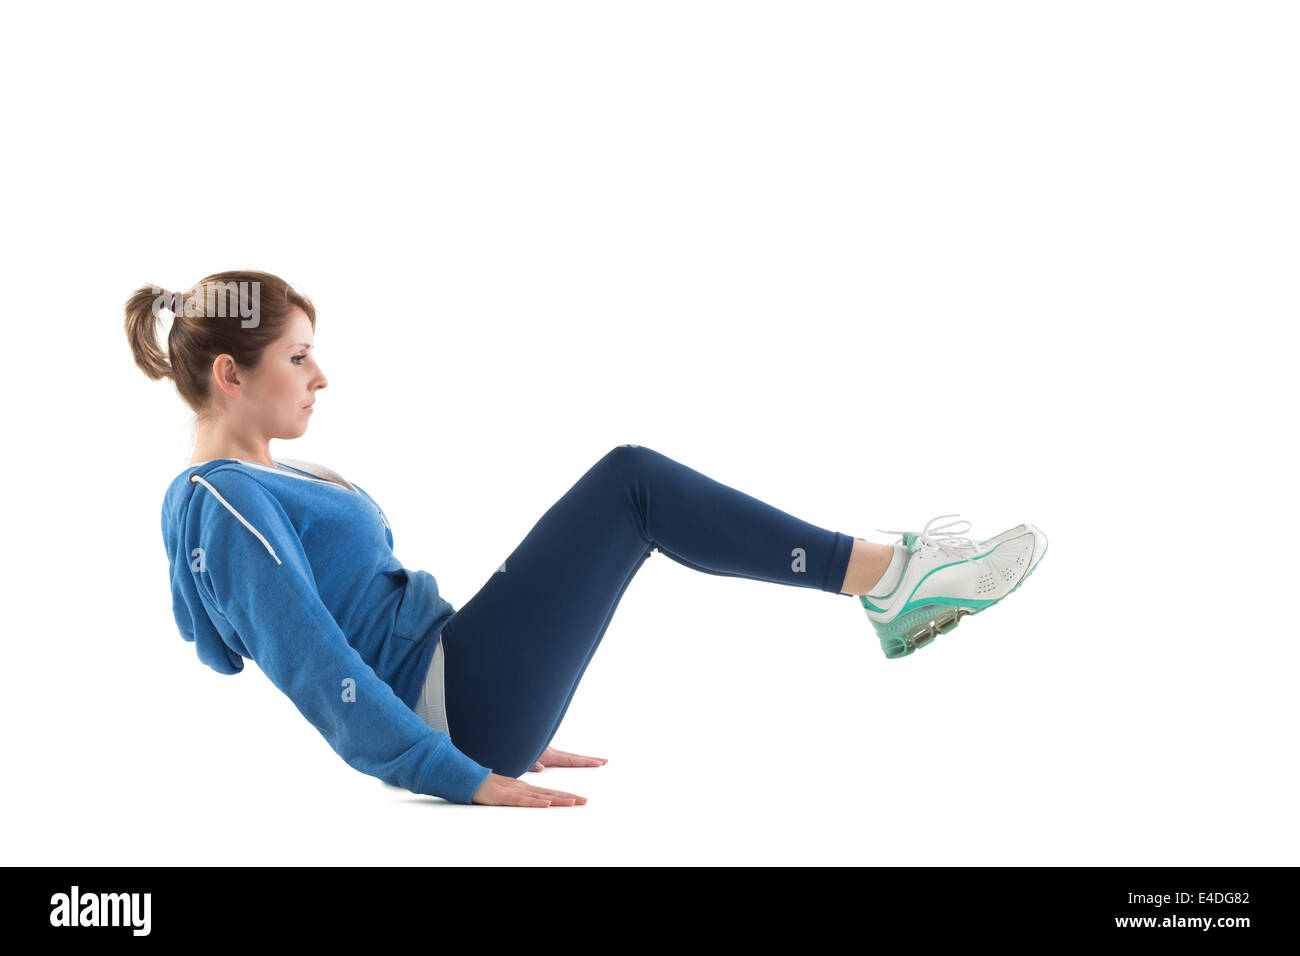 Side view of woman in core balance pilates pose - Stock Image